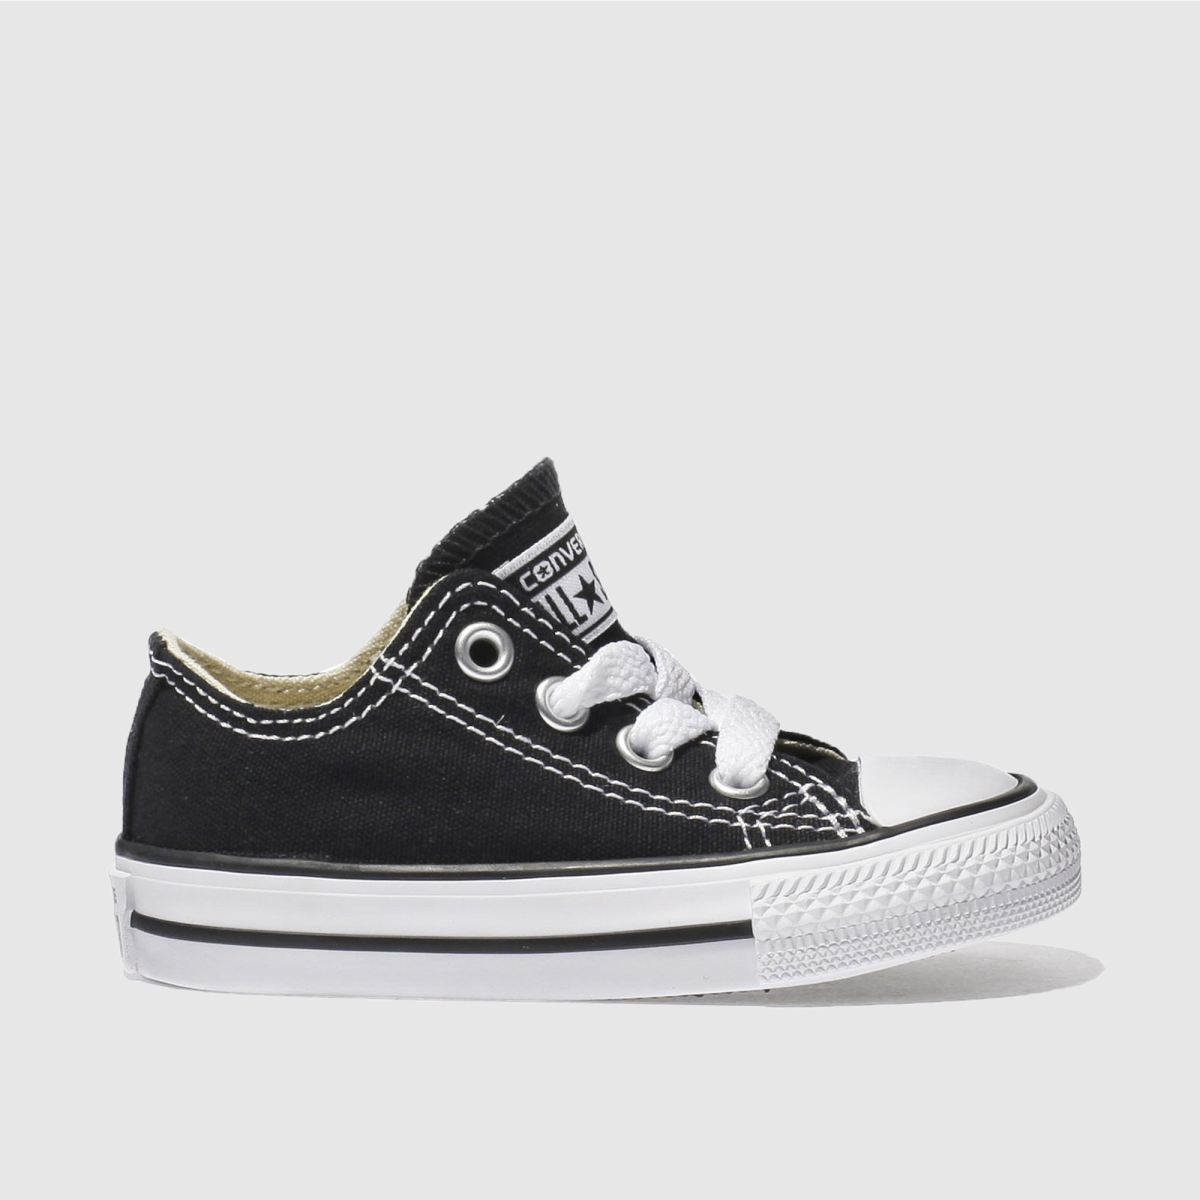 converse black all star lo Boys Toddler Trainers